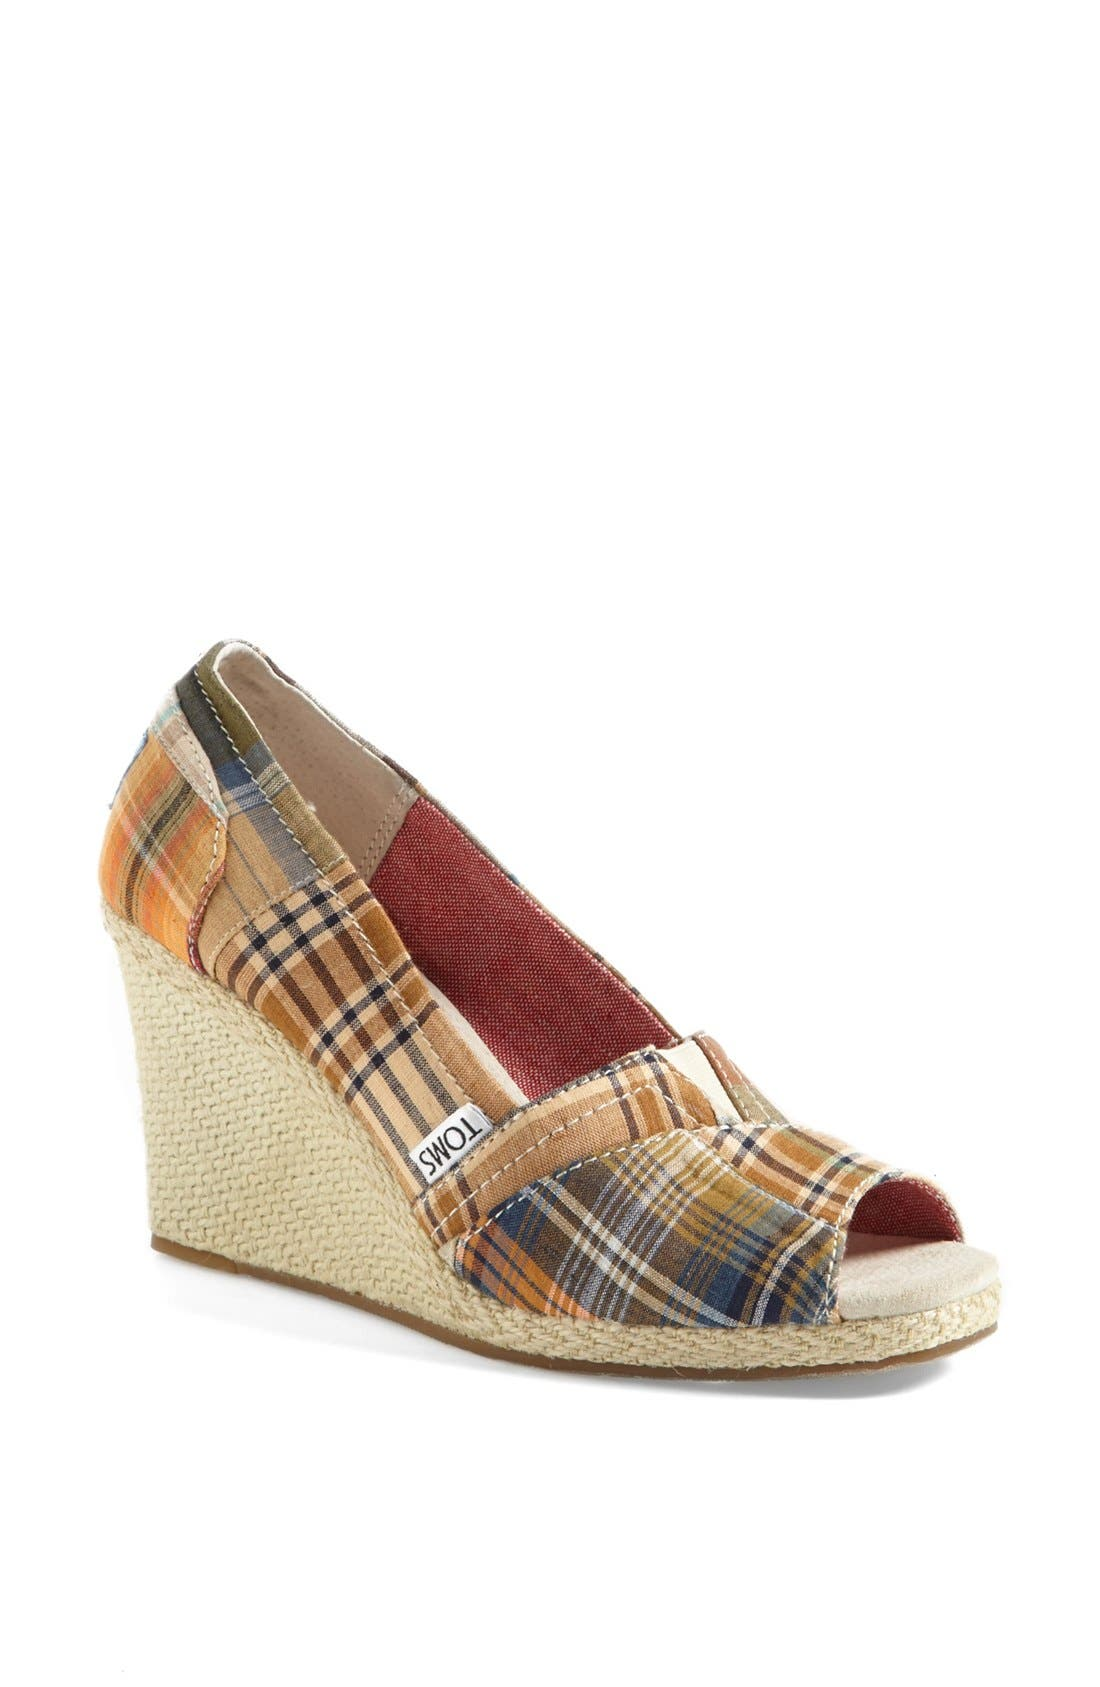 Main Image - TOMS 'Madras Plaid' Wedge (Women)